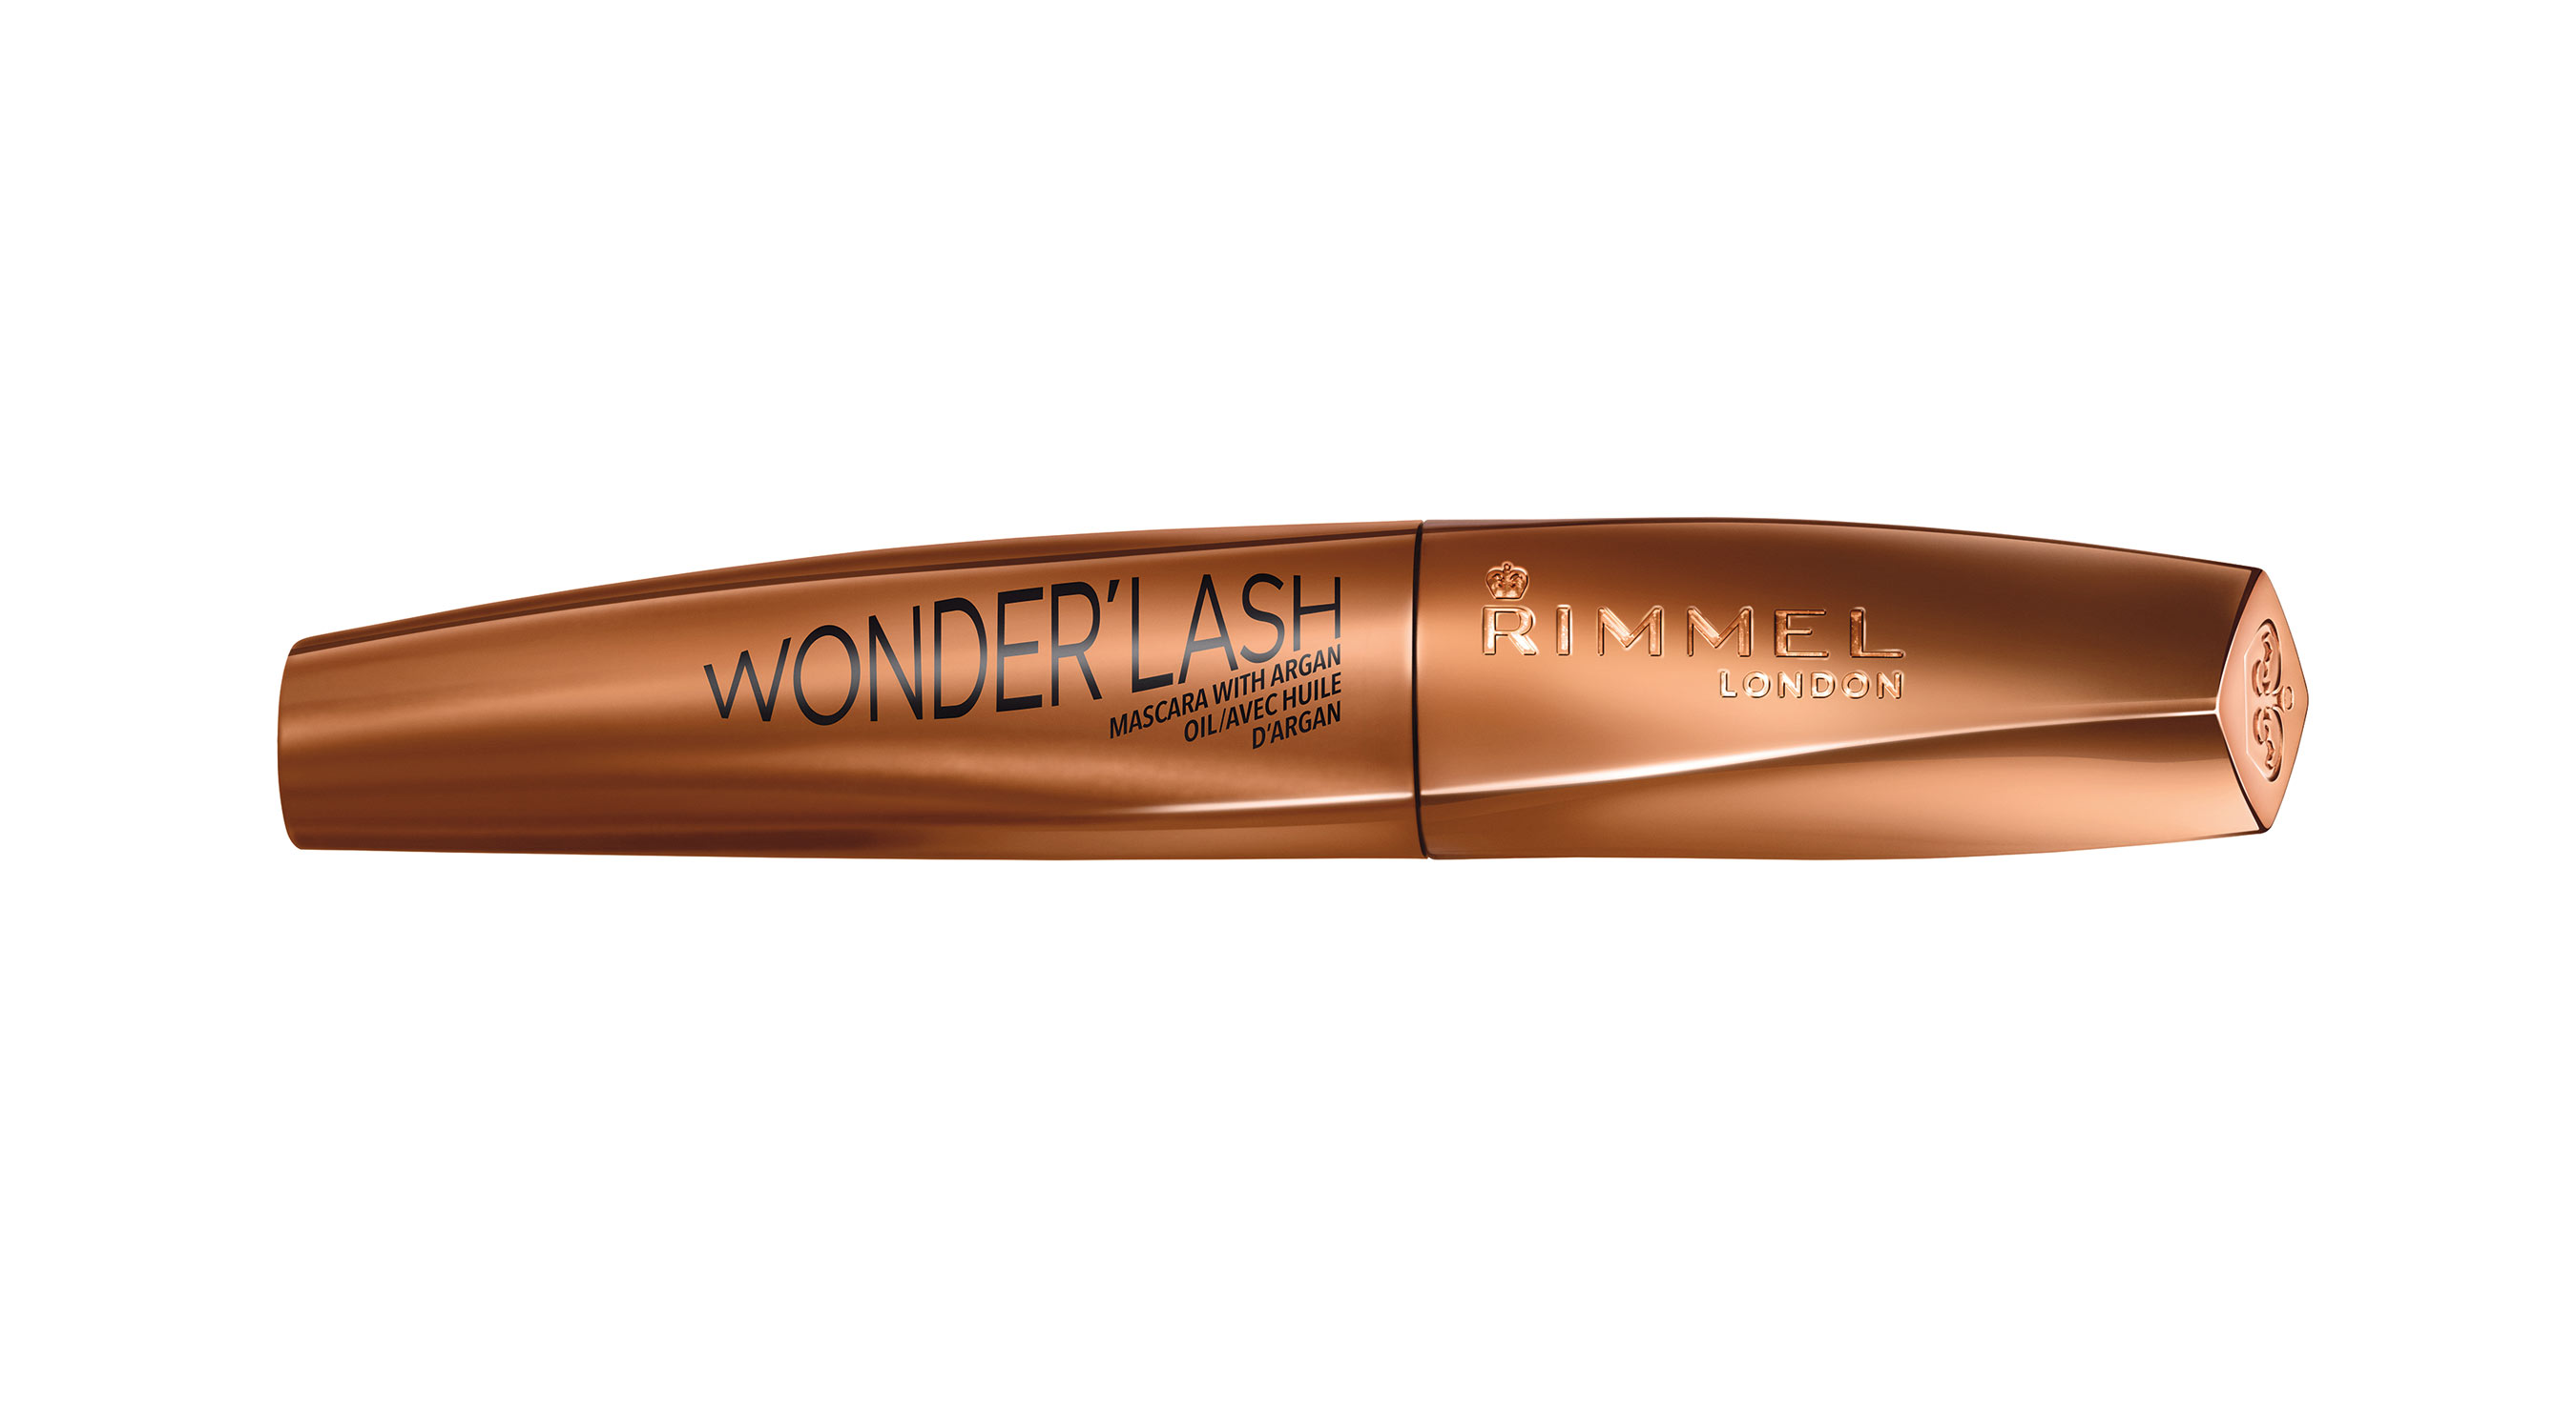 ada2cafa103 Get Your Fullest Lashes Ever With Wonder'lash Mascara from Rimmel London